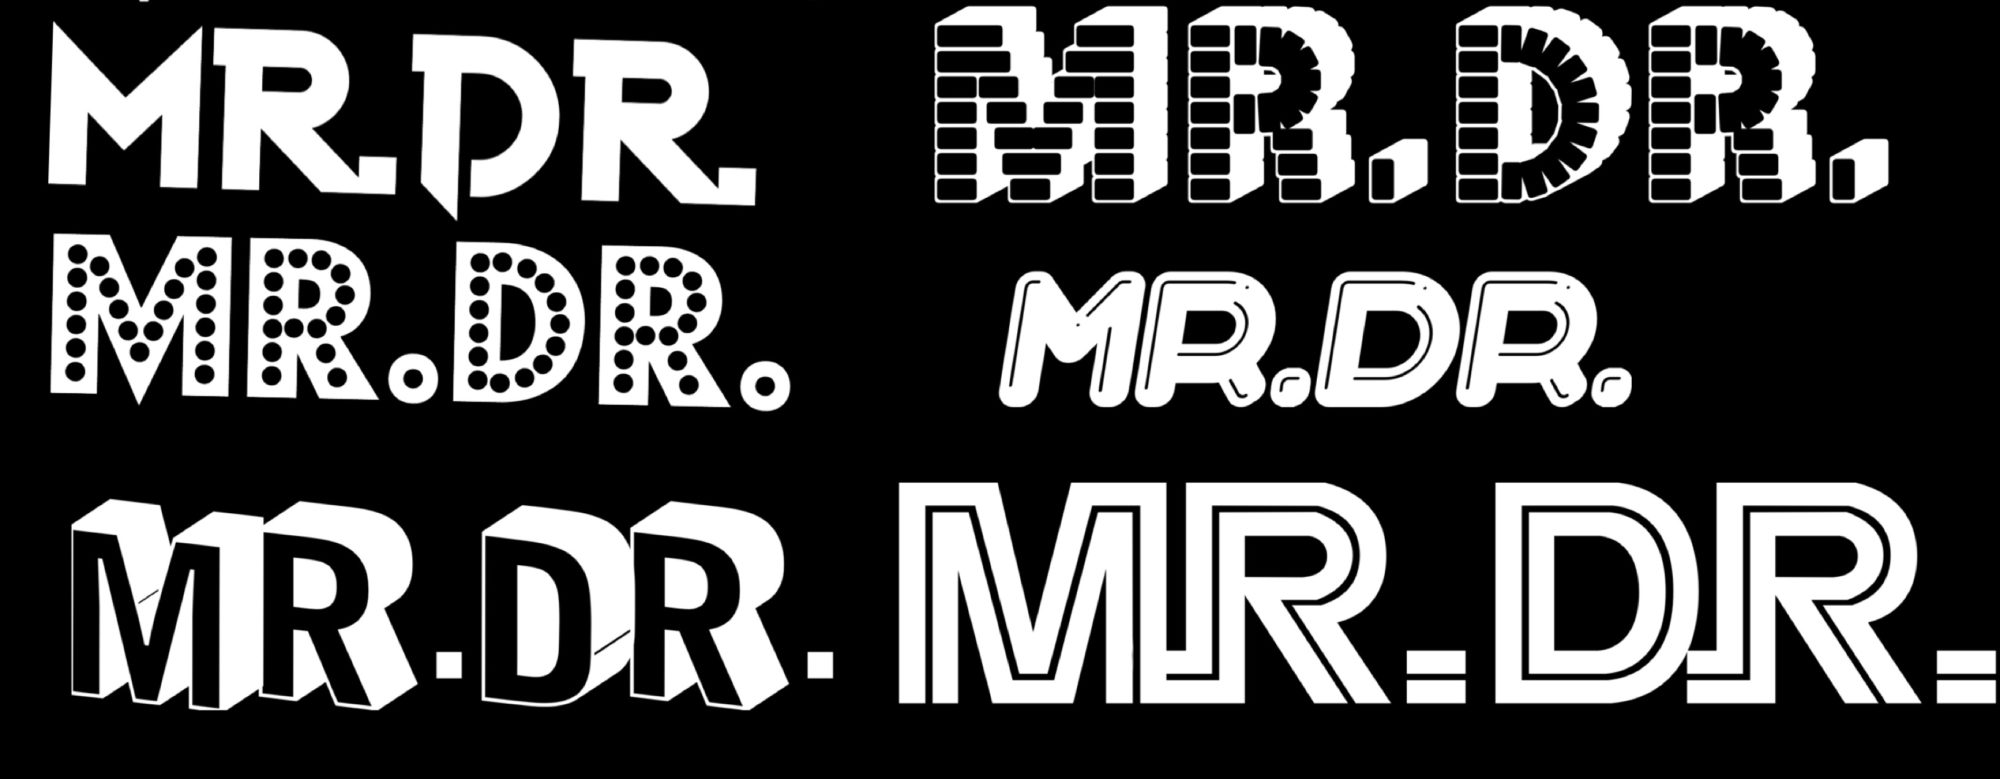 Mark Stenger Presents: MISTERDOCTER! A Spot 2 Shop 4 You. Not You Know Who...